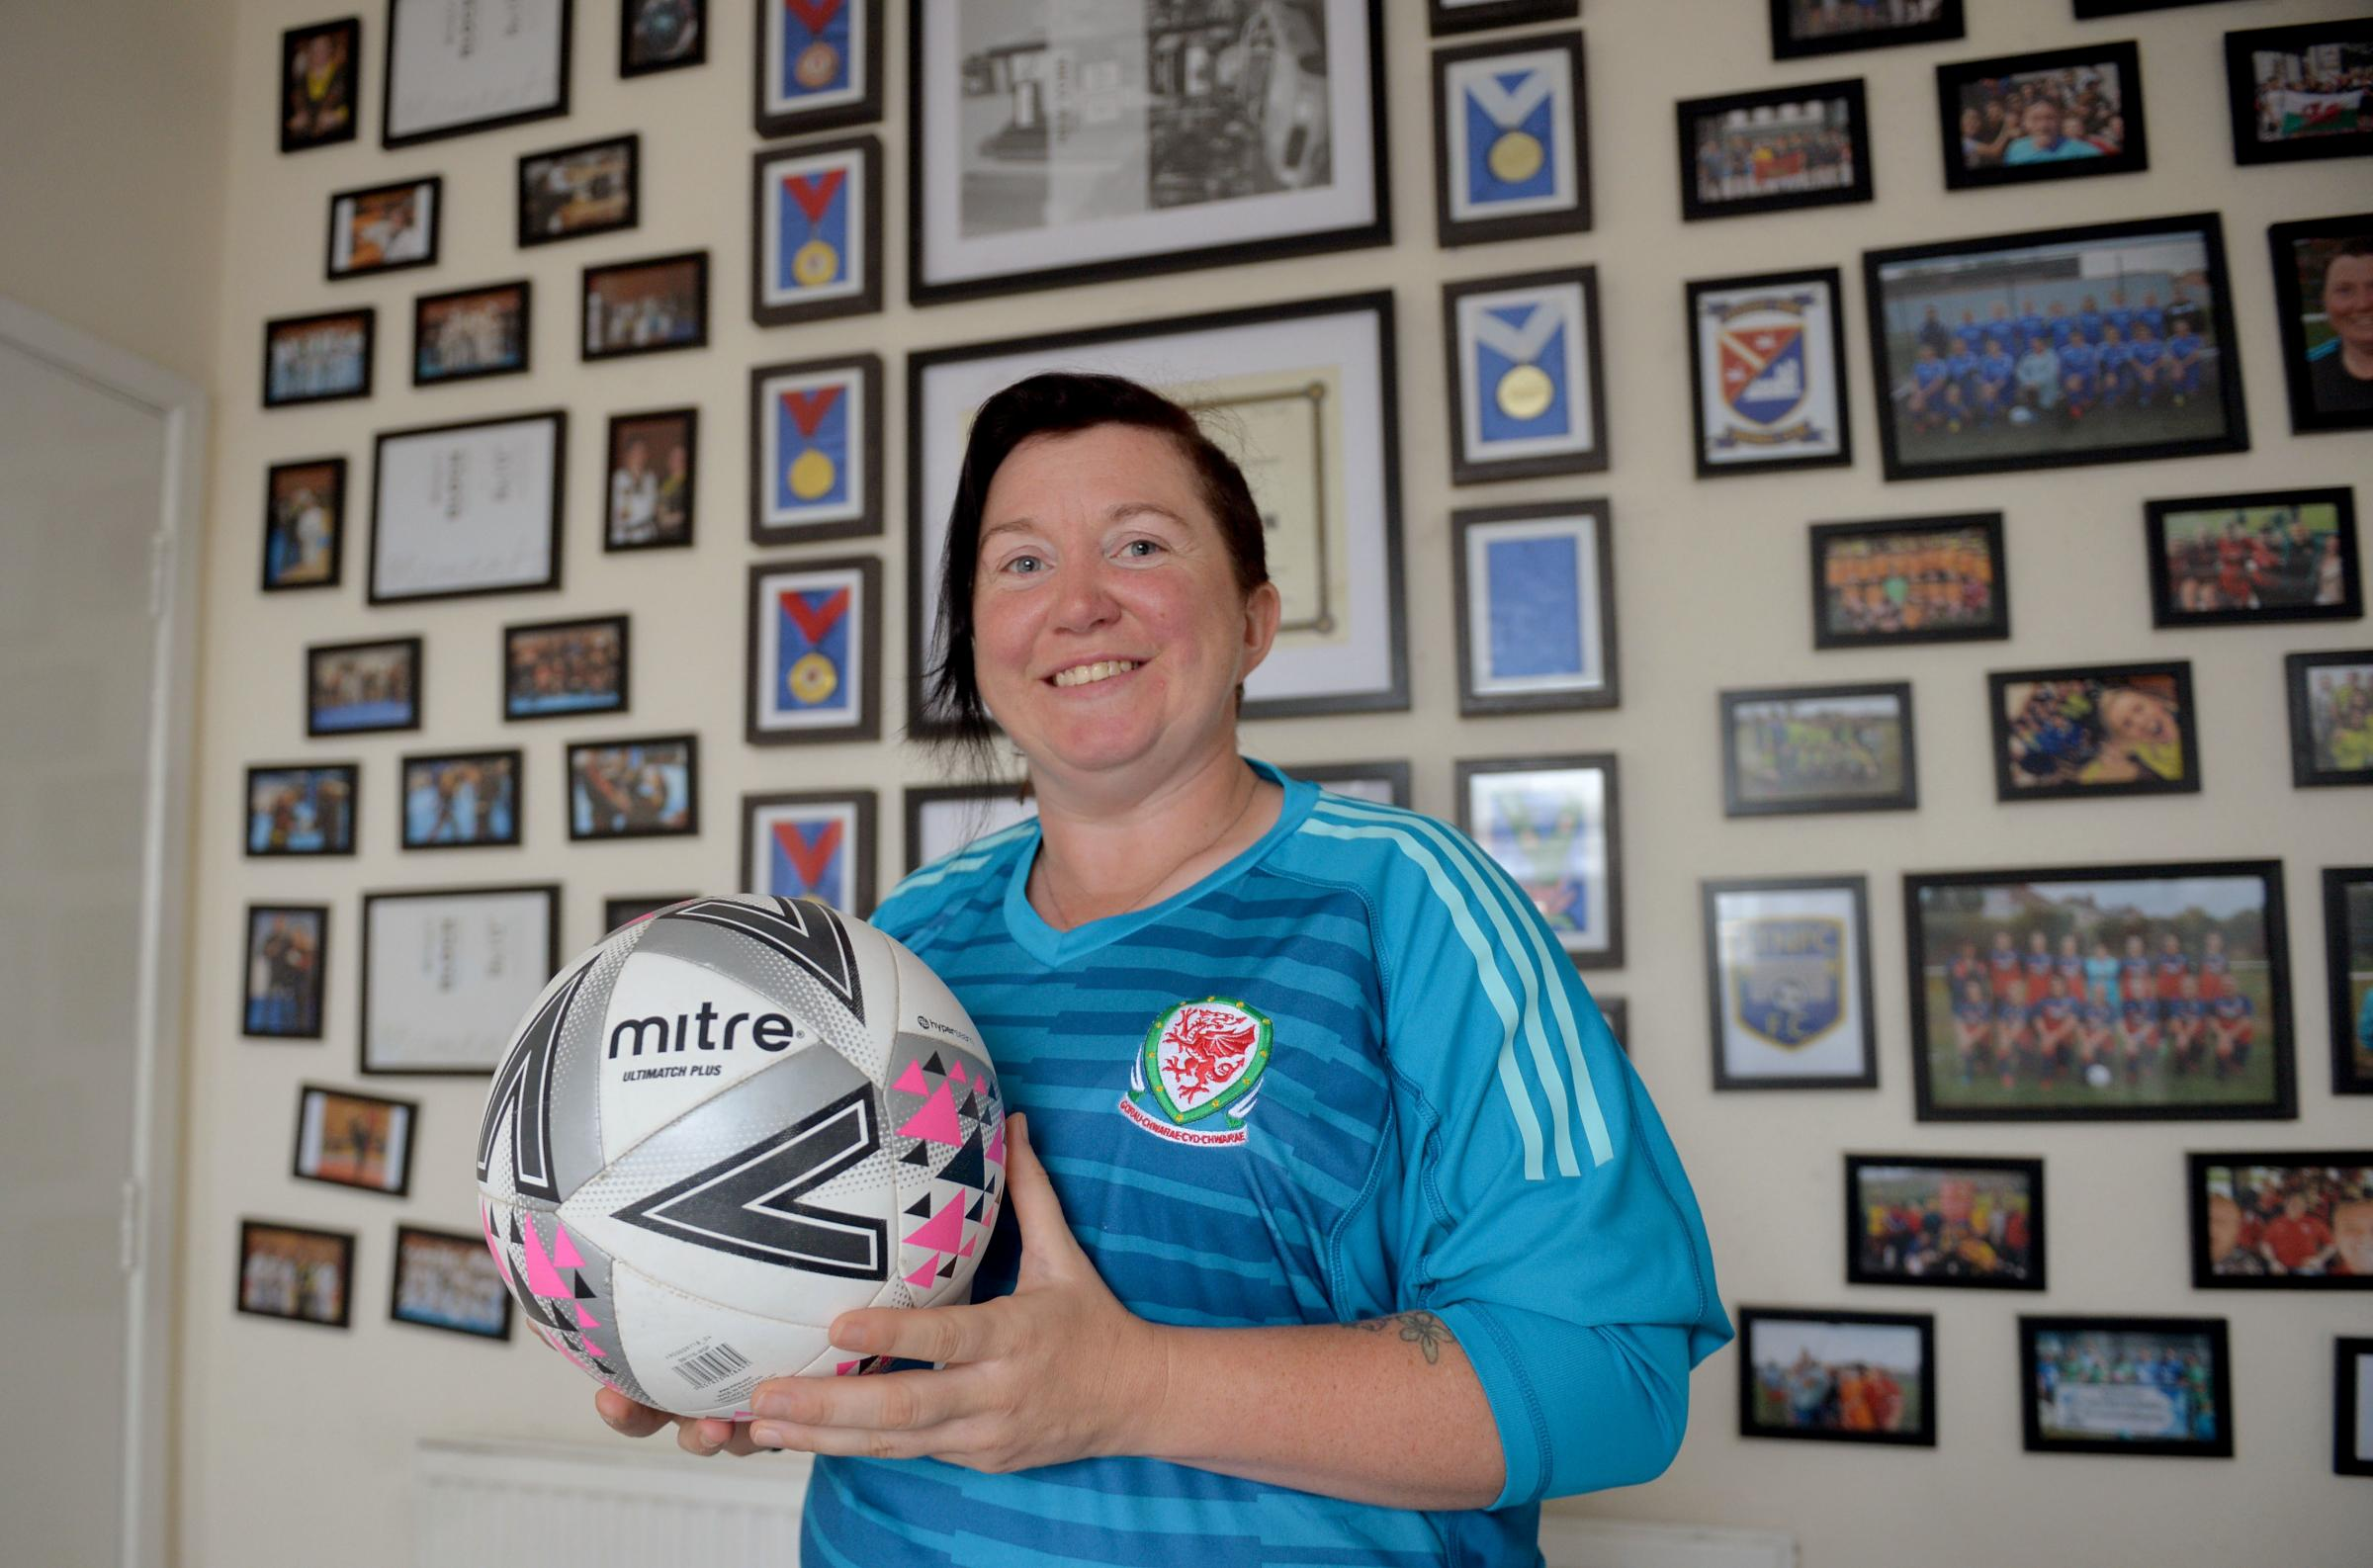 Jennifer Gattrell who represented Wales in The Homeless World Cup has joined Newport City Ladies FC